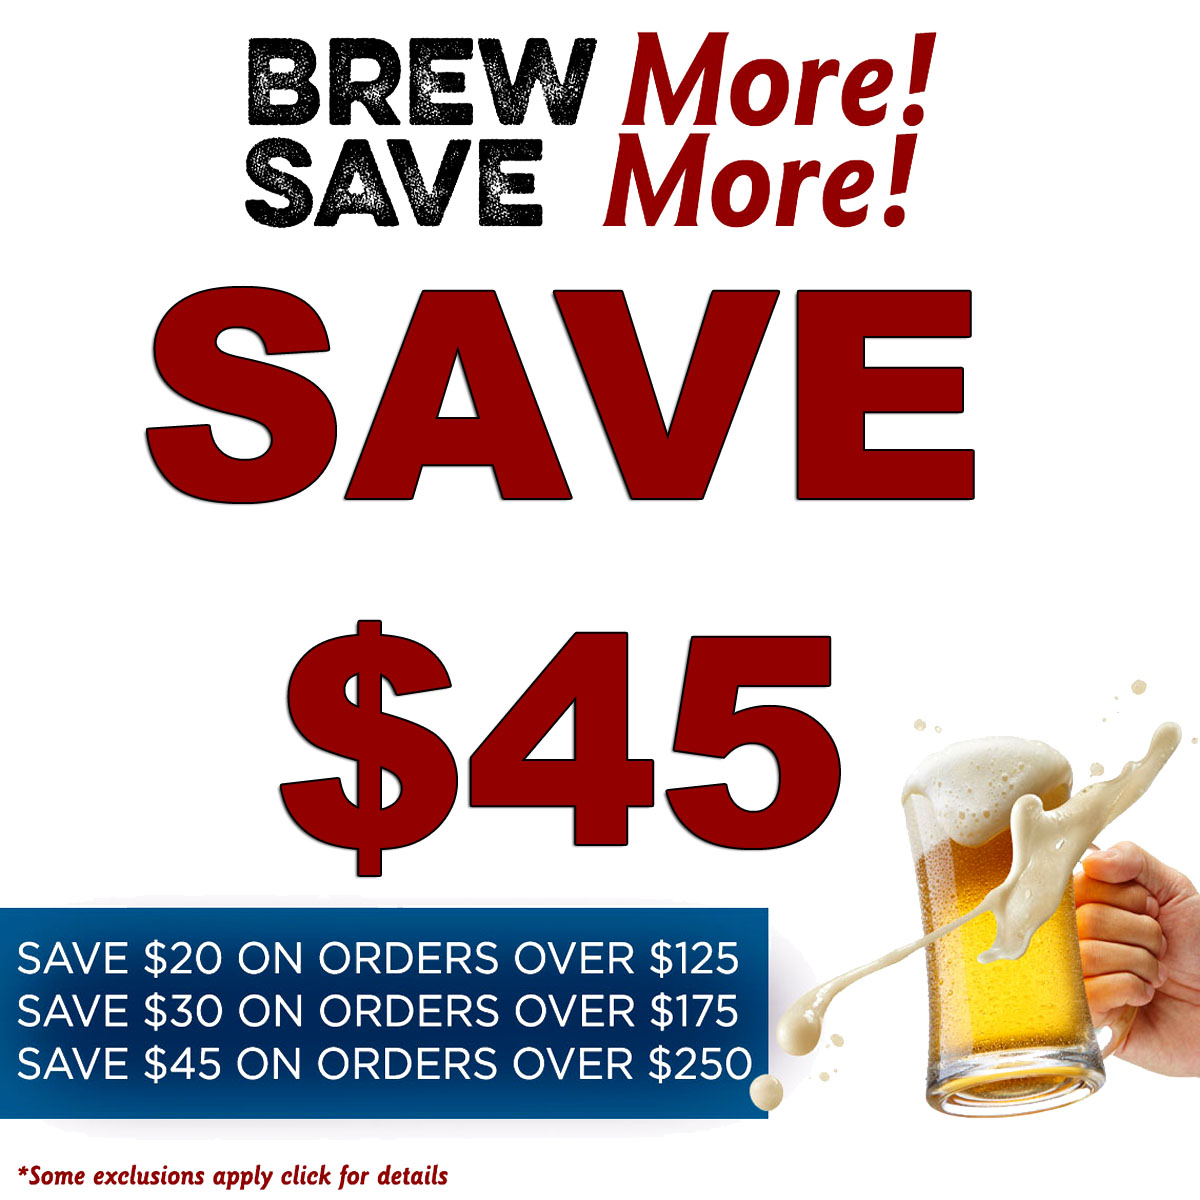 Save up to $45 on Your More Beer Purchase with this MoreBeer.com Coupon Code